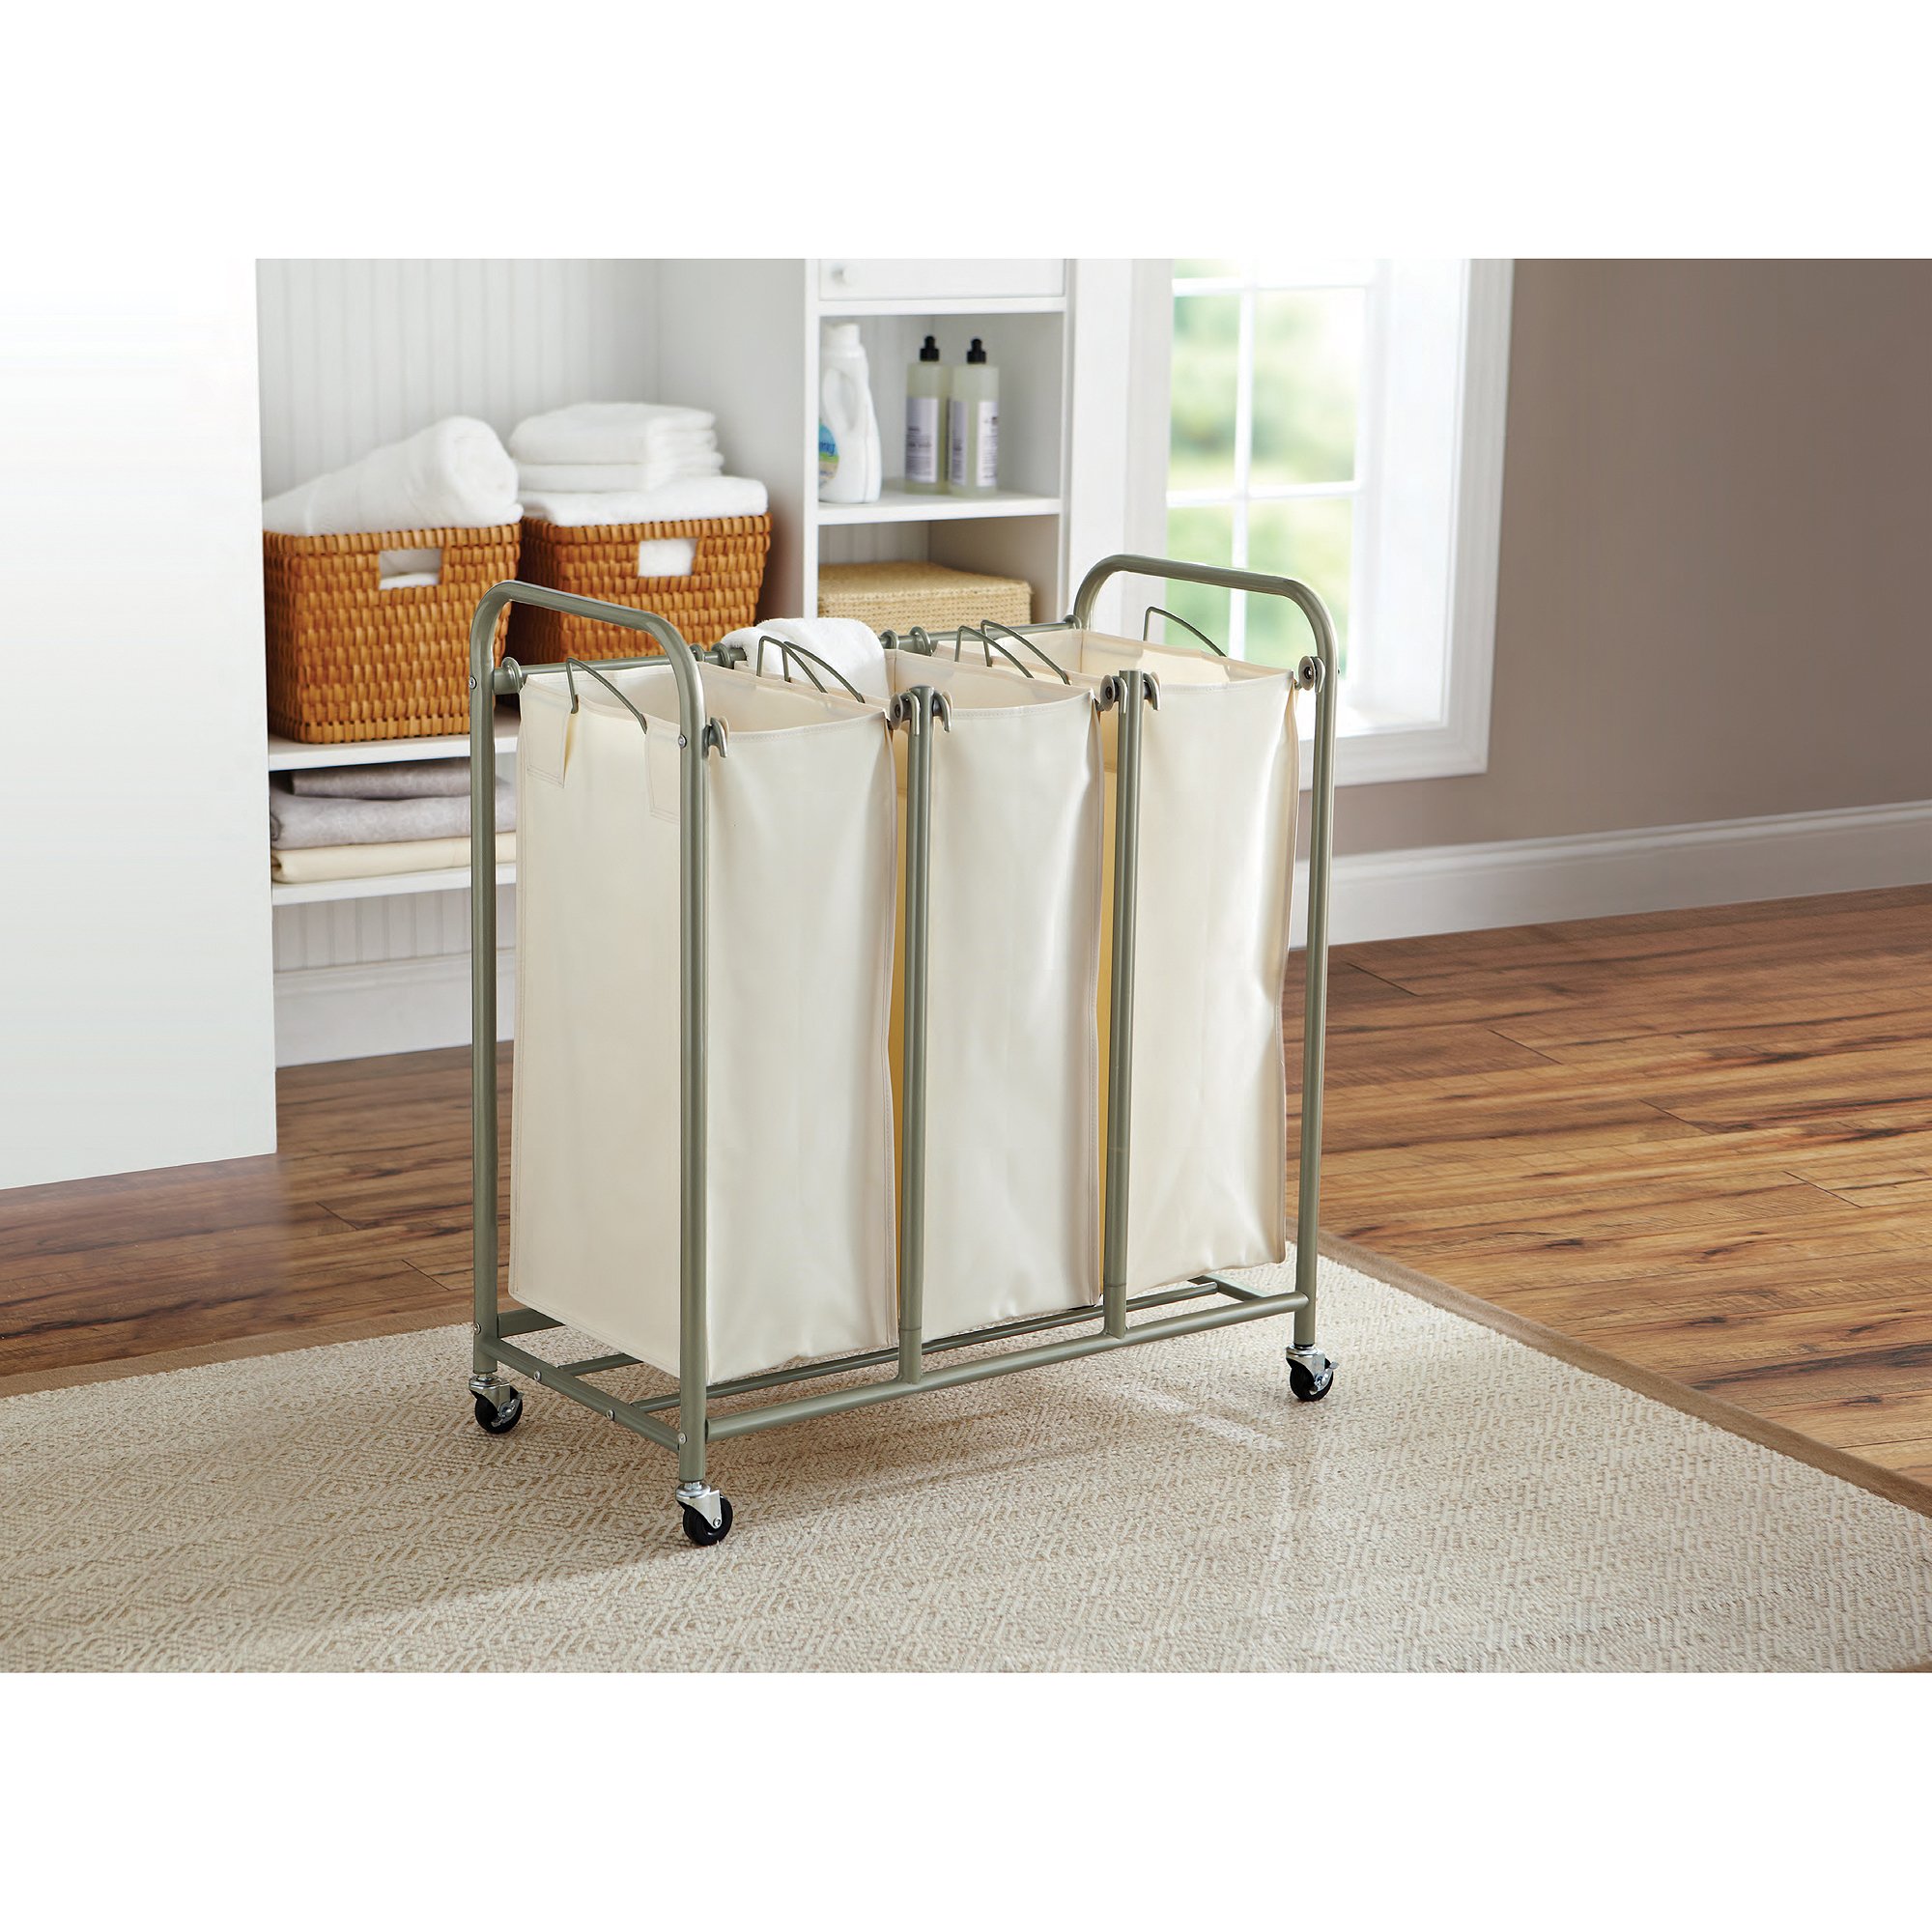 Better Homes and Gardens 3-Bag Laundry Sorter, Brown/Ivory